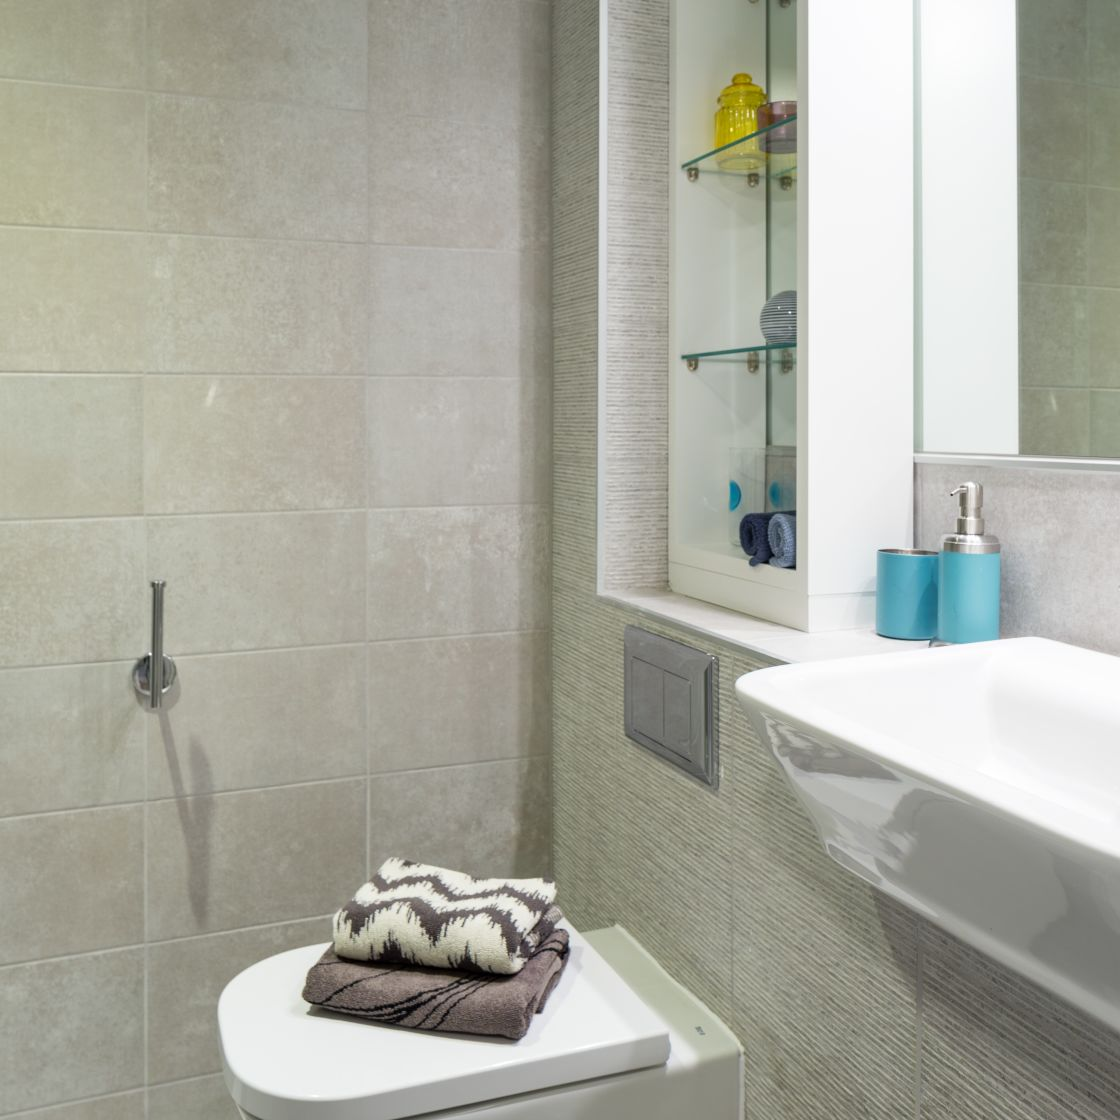 Smart Student Apartment in Leeds, En-suite toilet and Sink. IconInc, The Glassworks